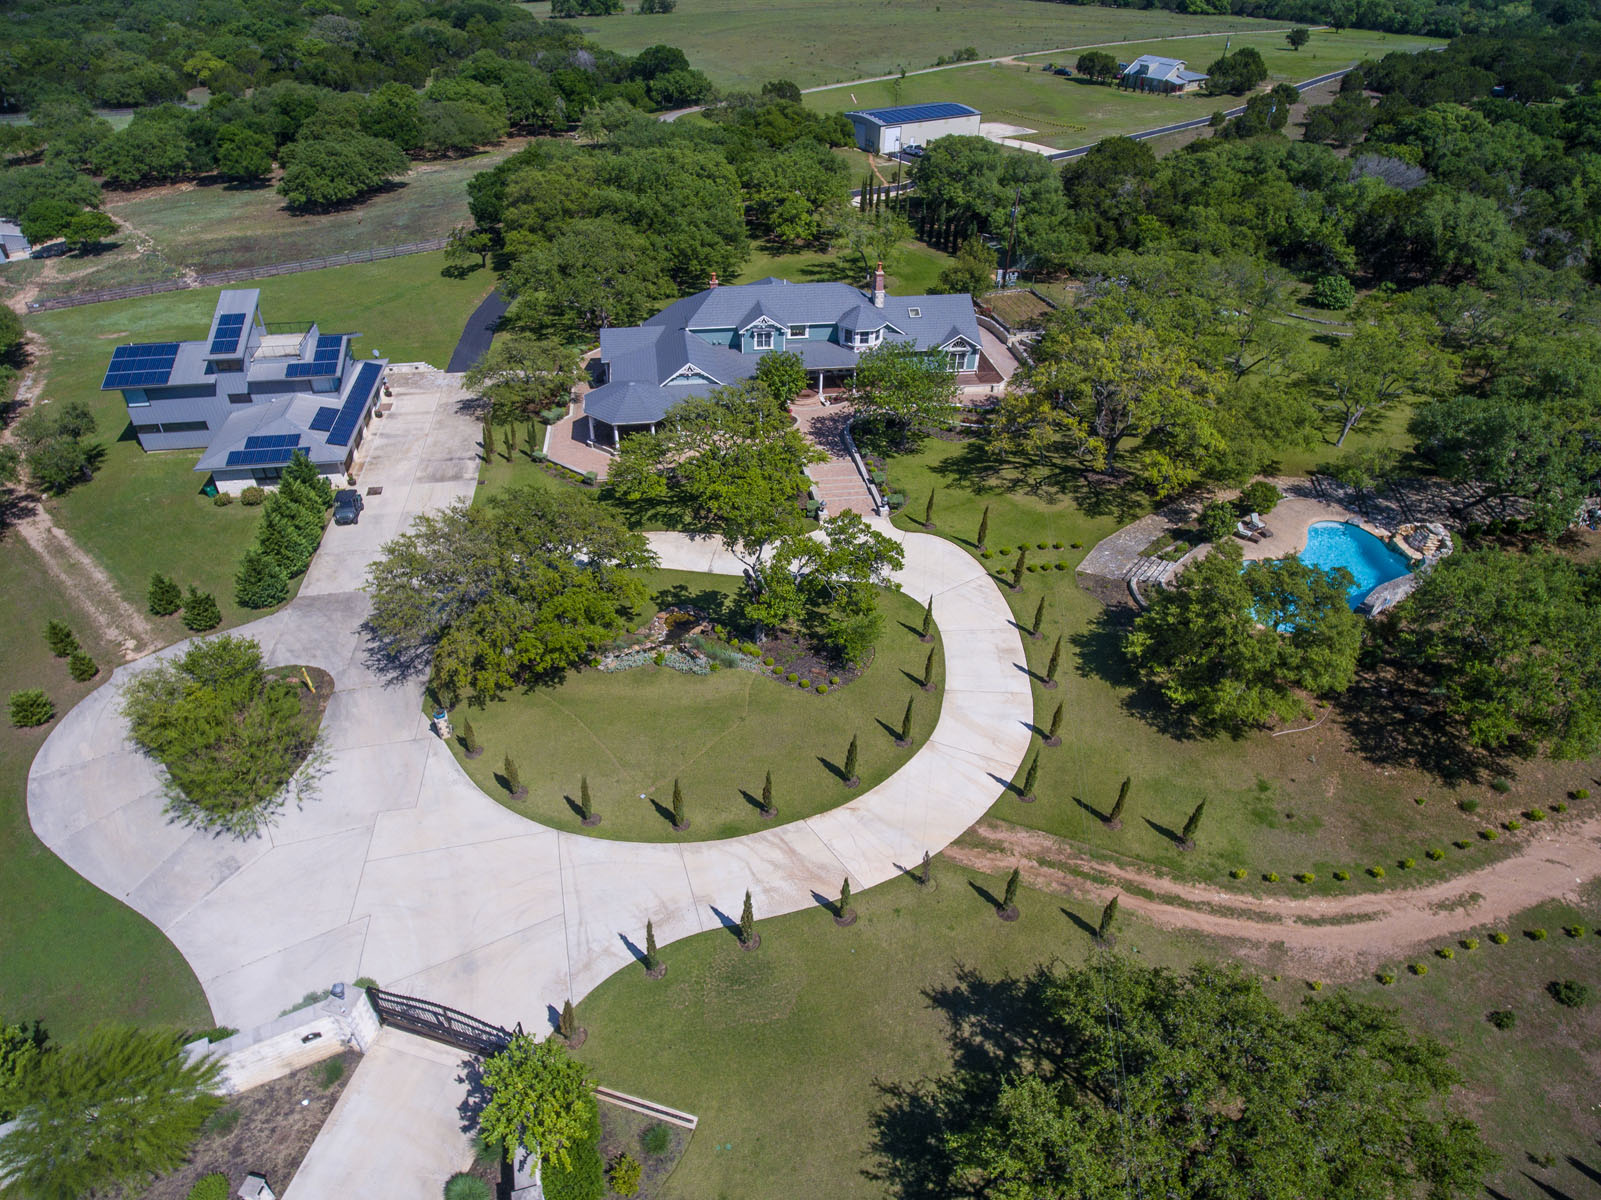 Casa Unifamiliar por un Venta en The Texas Hill Country Manor 690 Autumn Ln Dripping Springs, Texas 78620 Estados Unidos